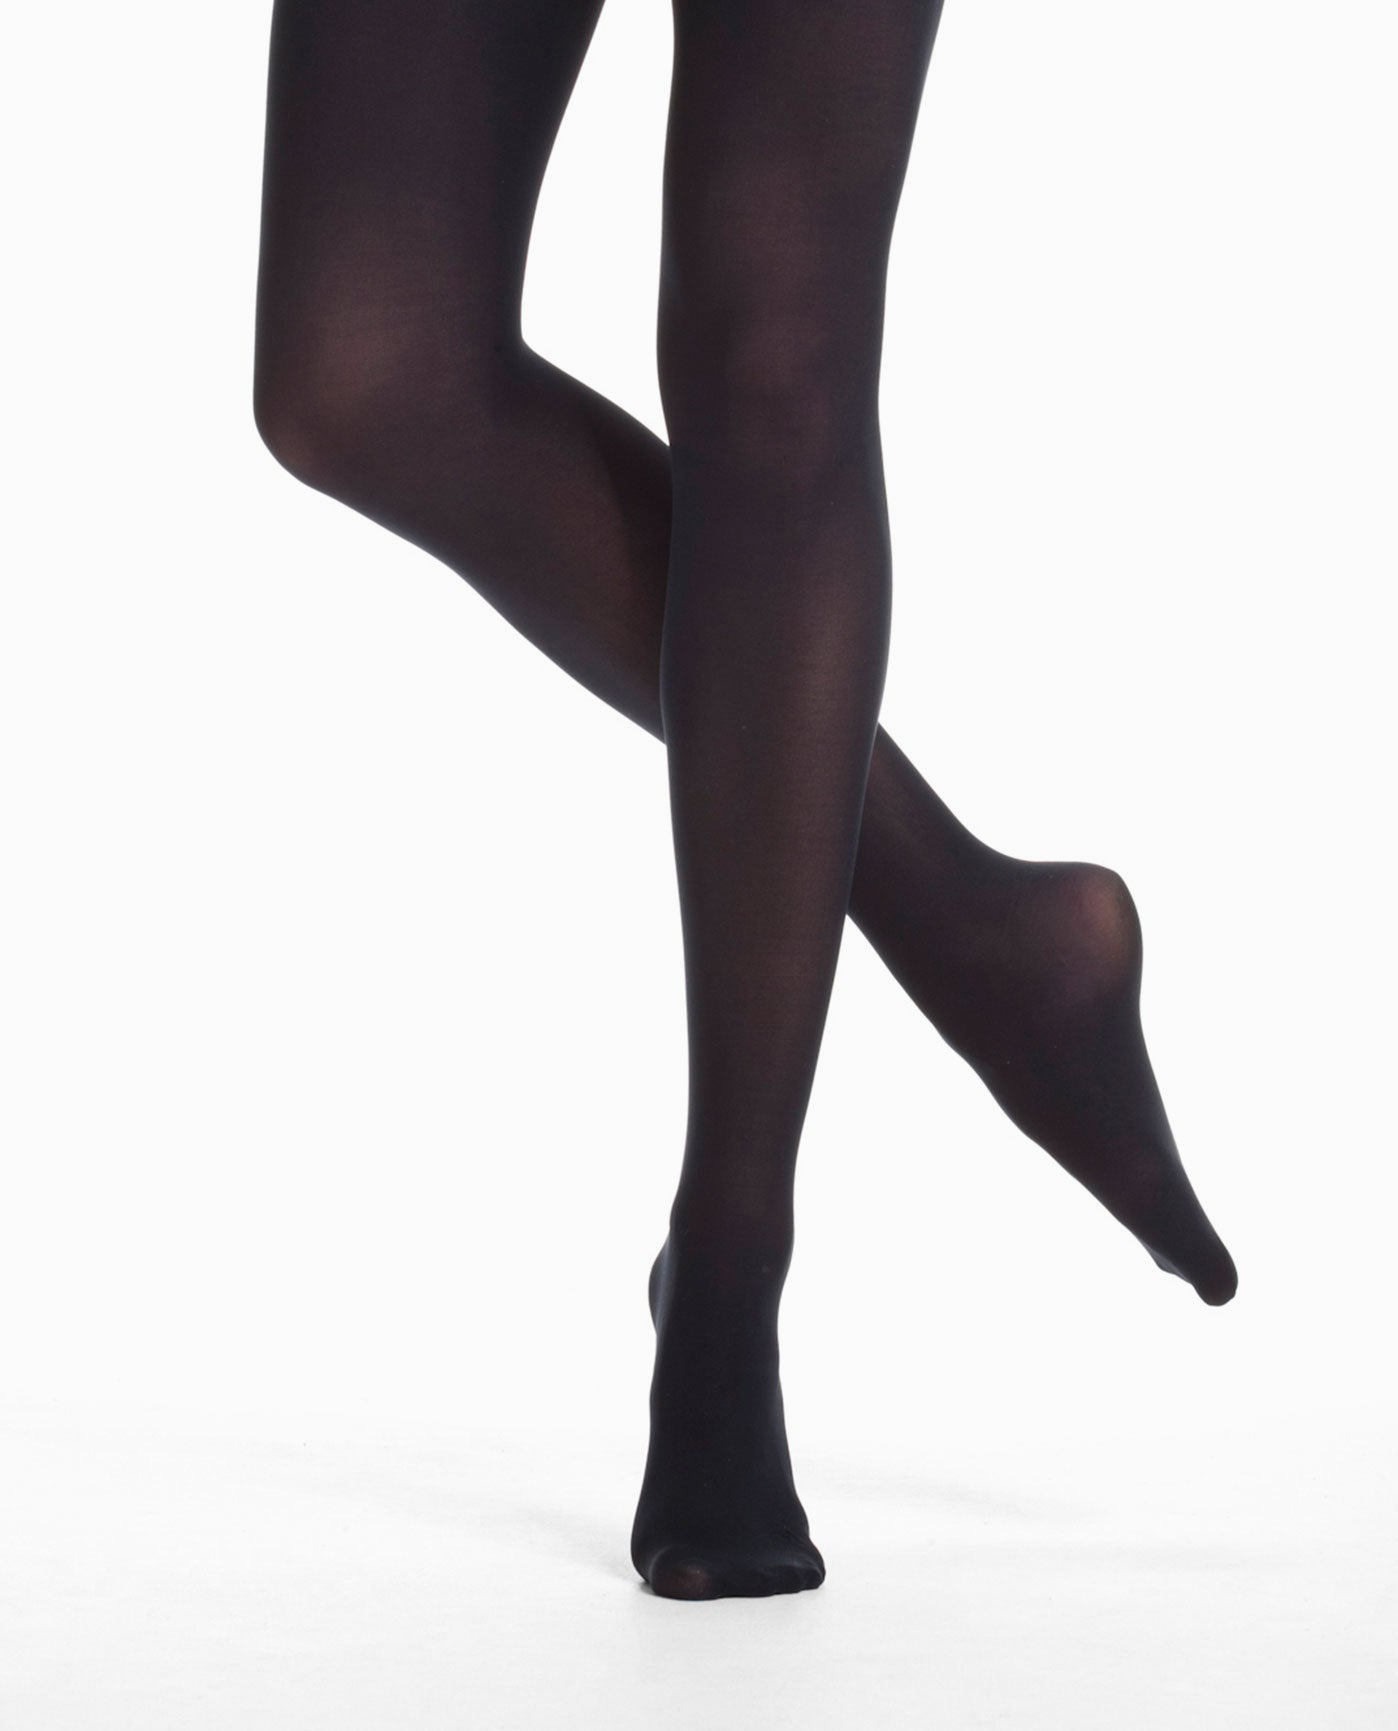 b65110644d875 Women's Ultrasoft Microfiber Footed Tight | Womens Tights | Danskin